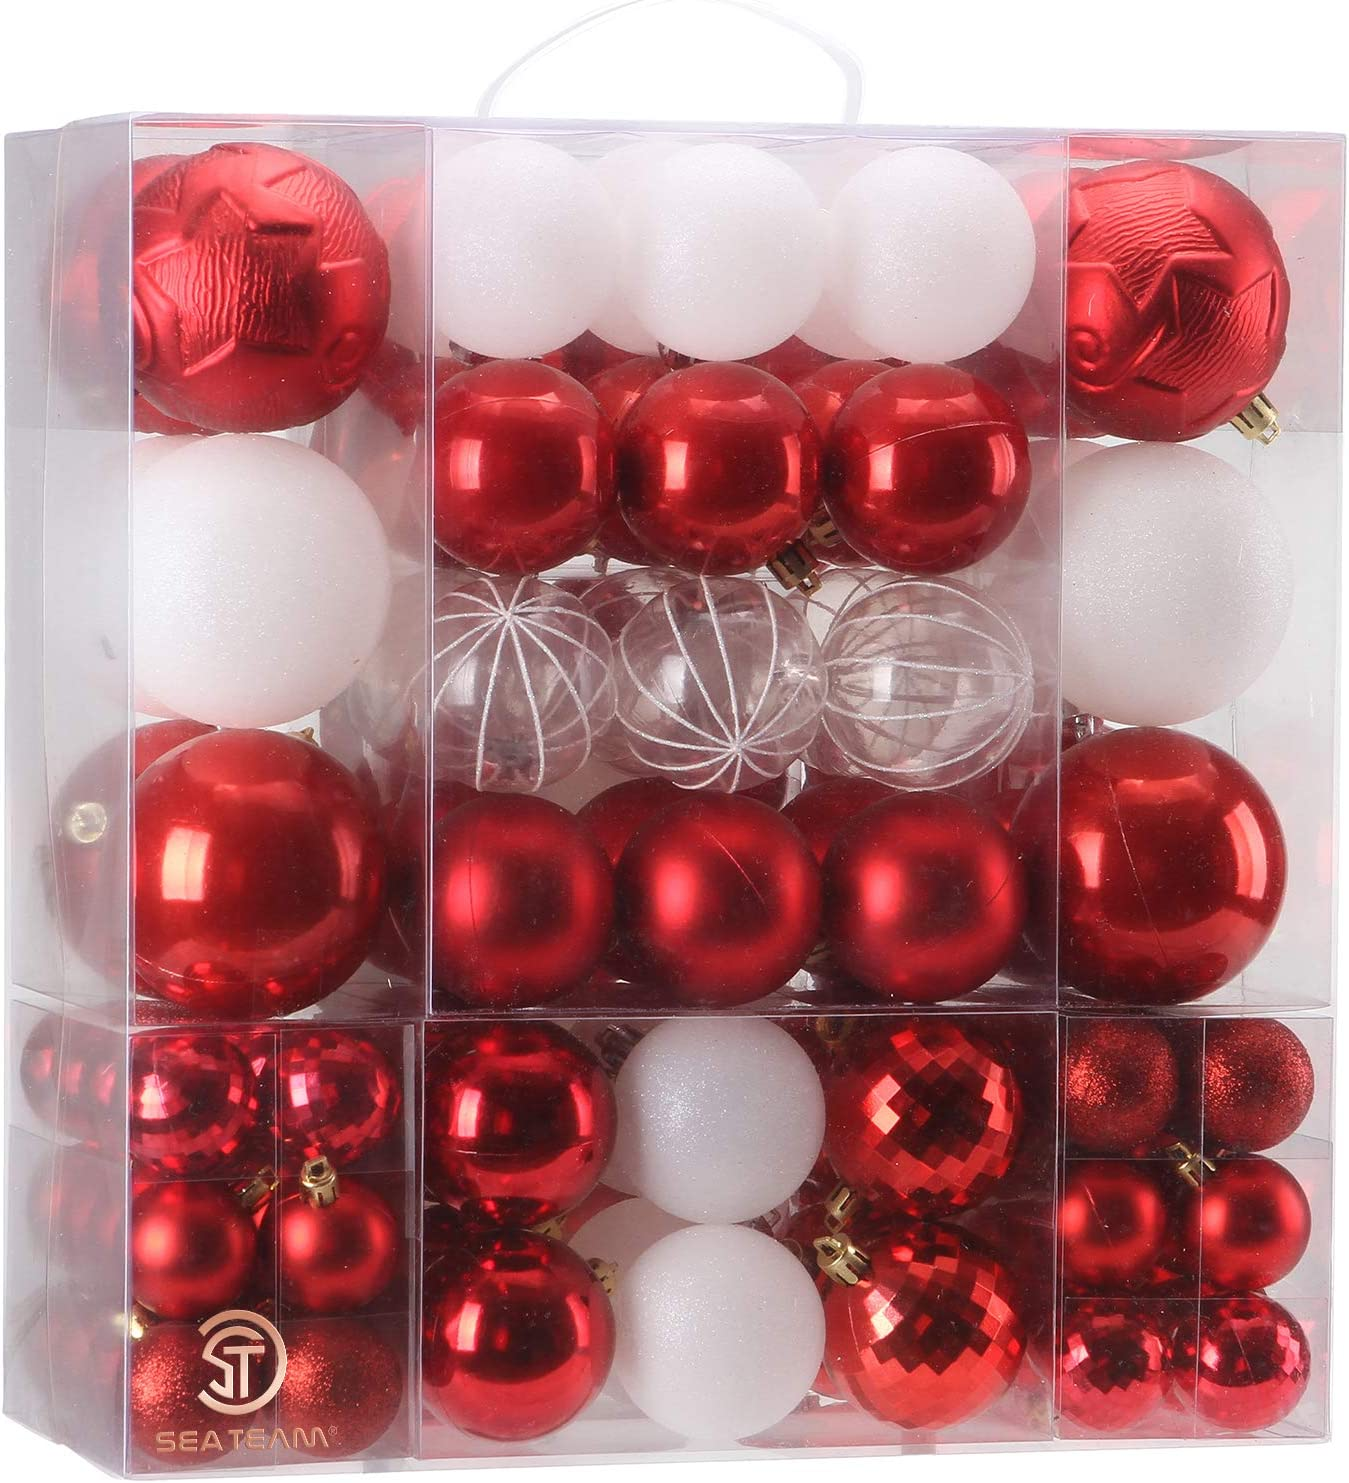 Sea Team 125 Pieces of Assorted Christmas Ball Ornaments Shatterproof Seasonal Decorative Hanging Baubles Set with Reusable Hand-held Gift Package for Holiday Xmas Tree Decorations, Red